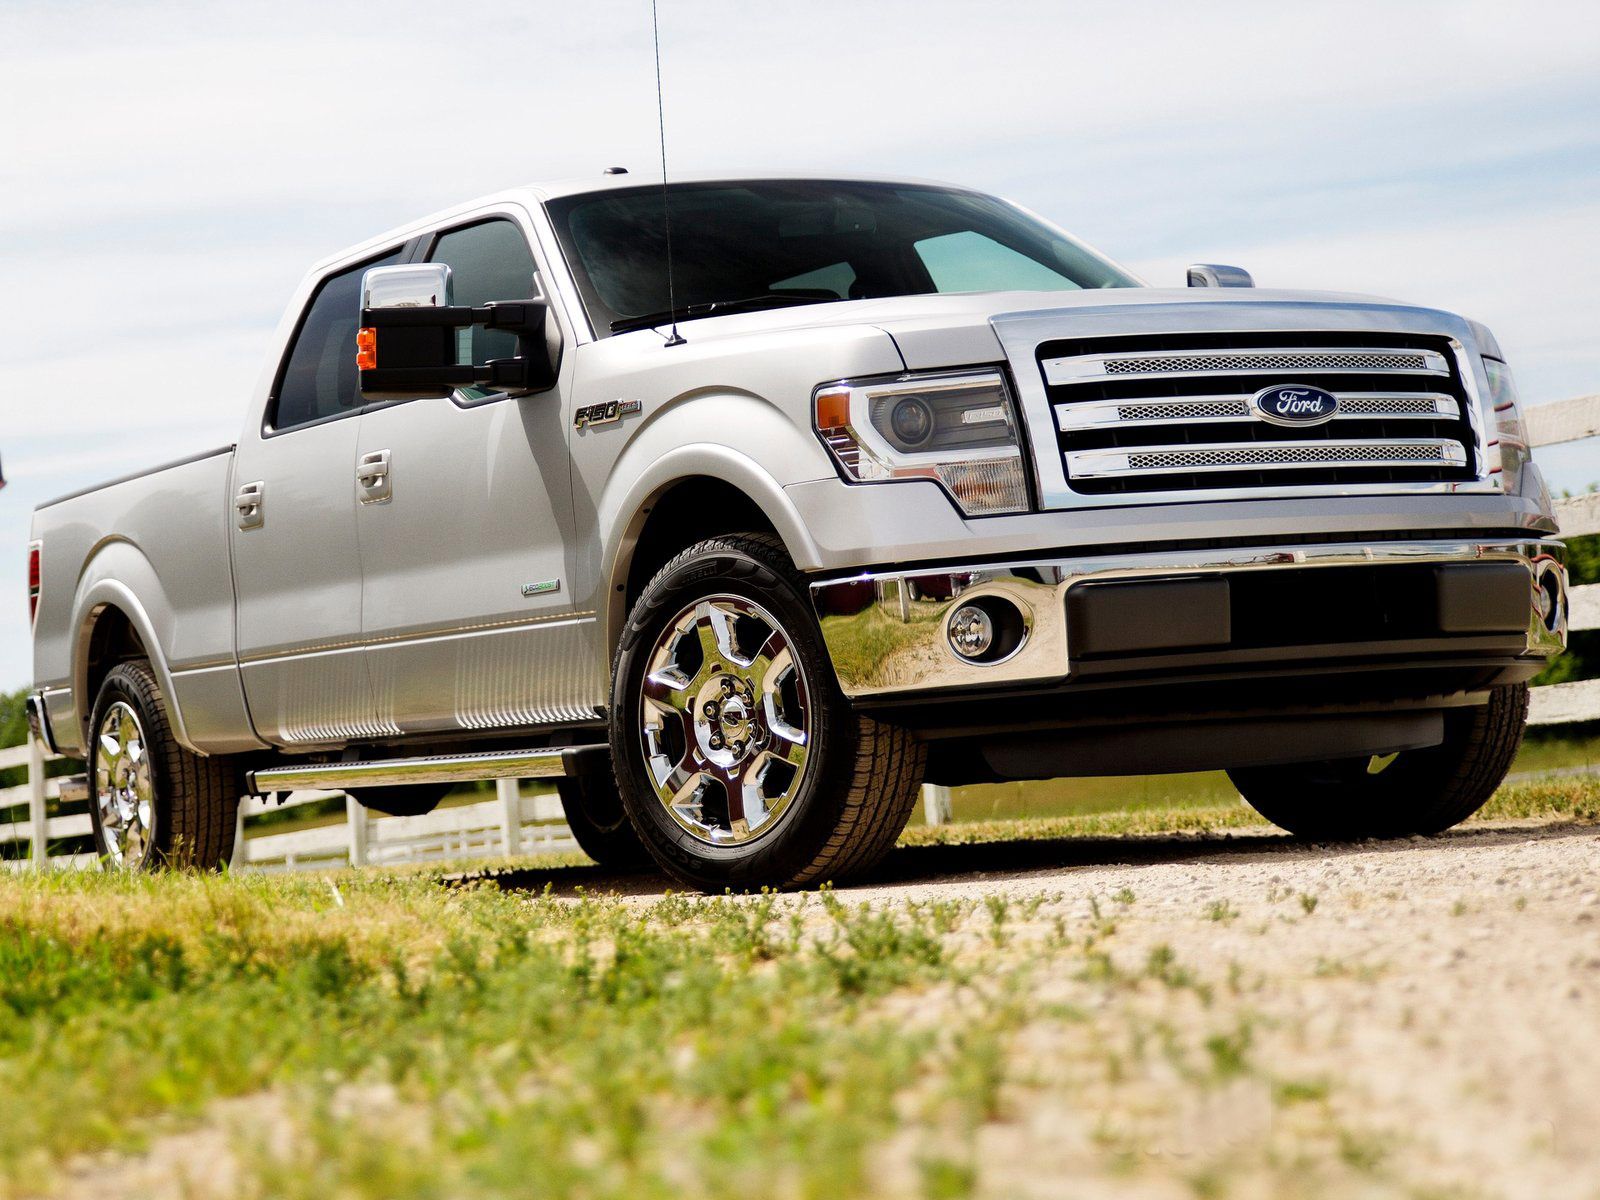 http://1.bp.blogspot.com/-l70c9wbUWfU/T81D8a-0SmI/AAAAAAAADlk/oFFP9Y7CB4U/s1600/2013_Ford-F-150_cars-picture-collection_1.jpg